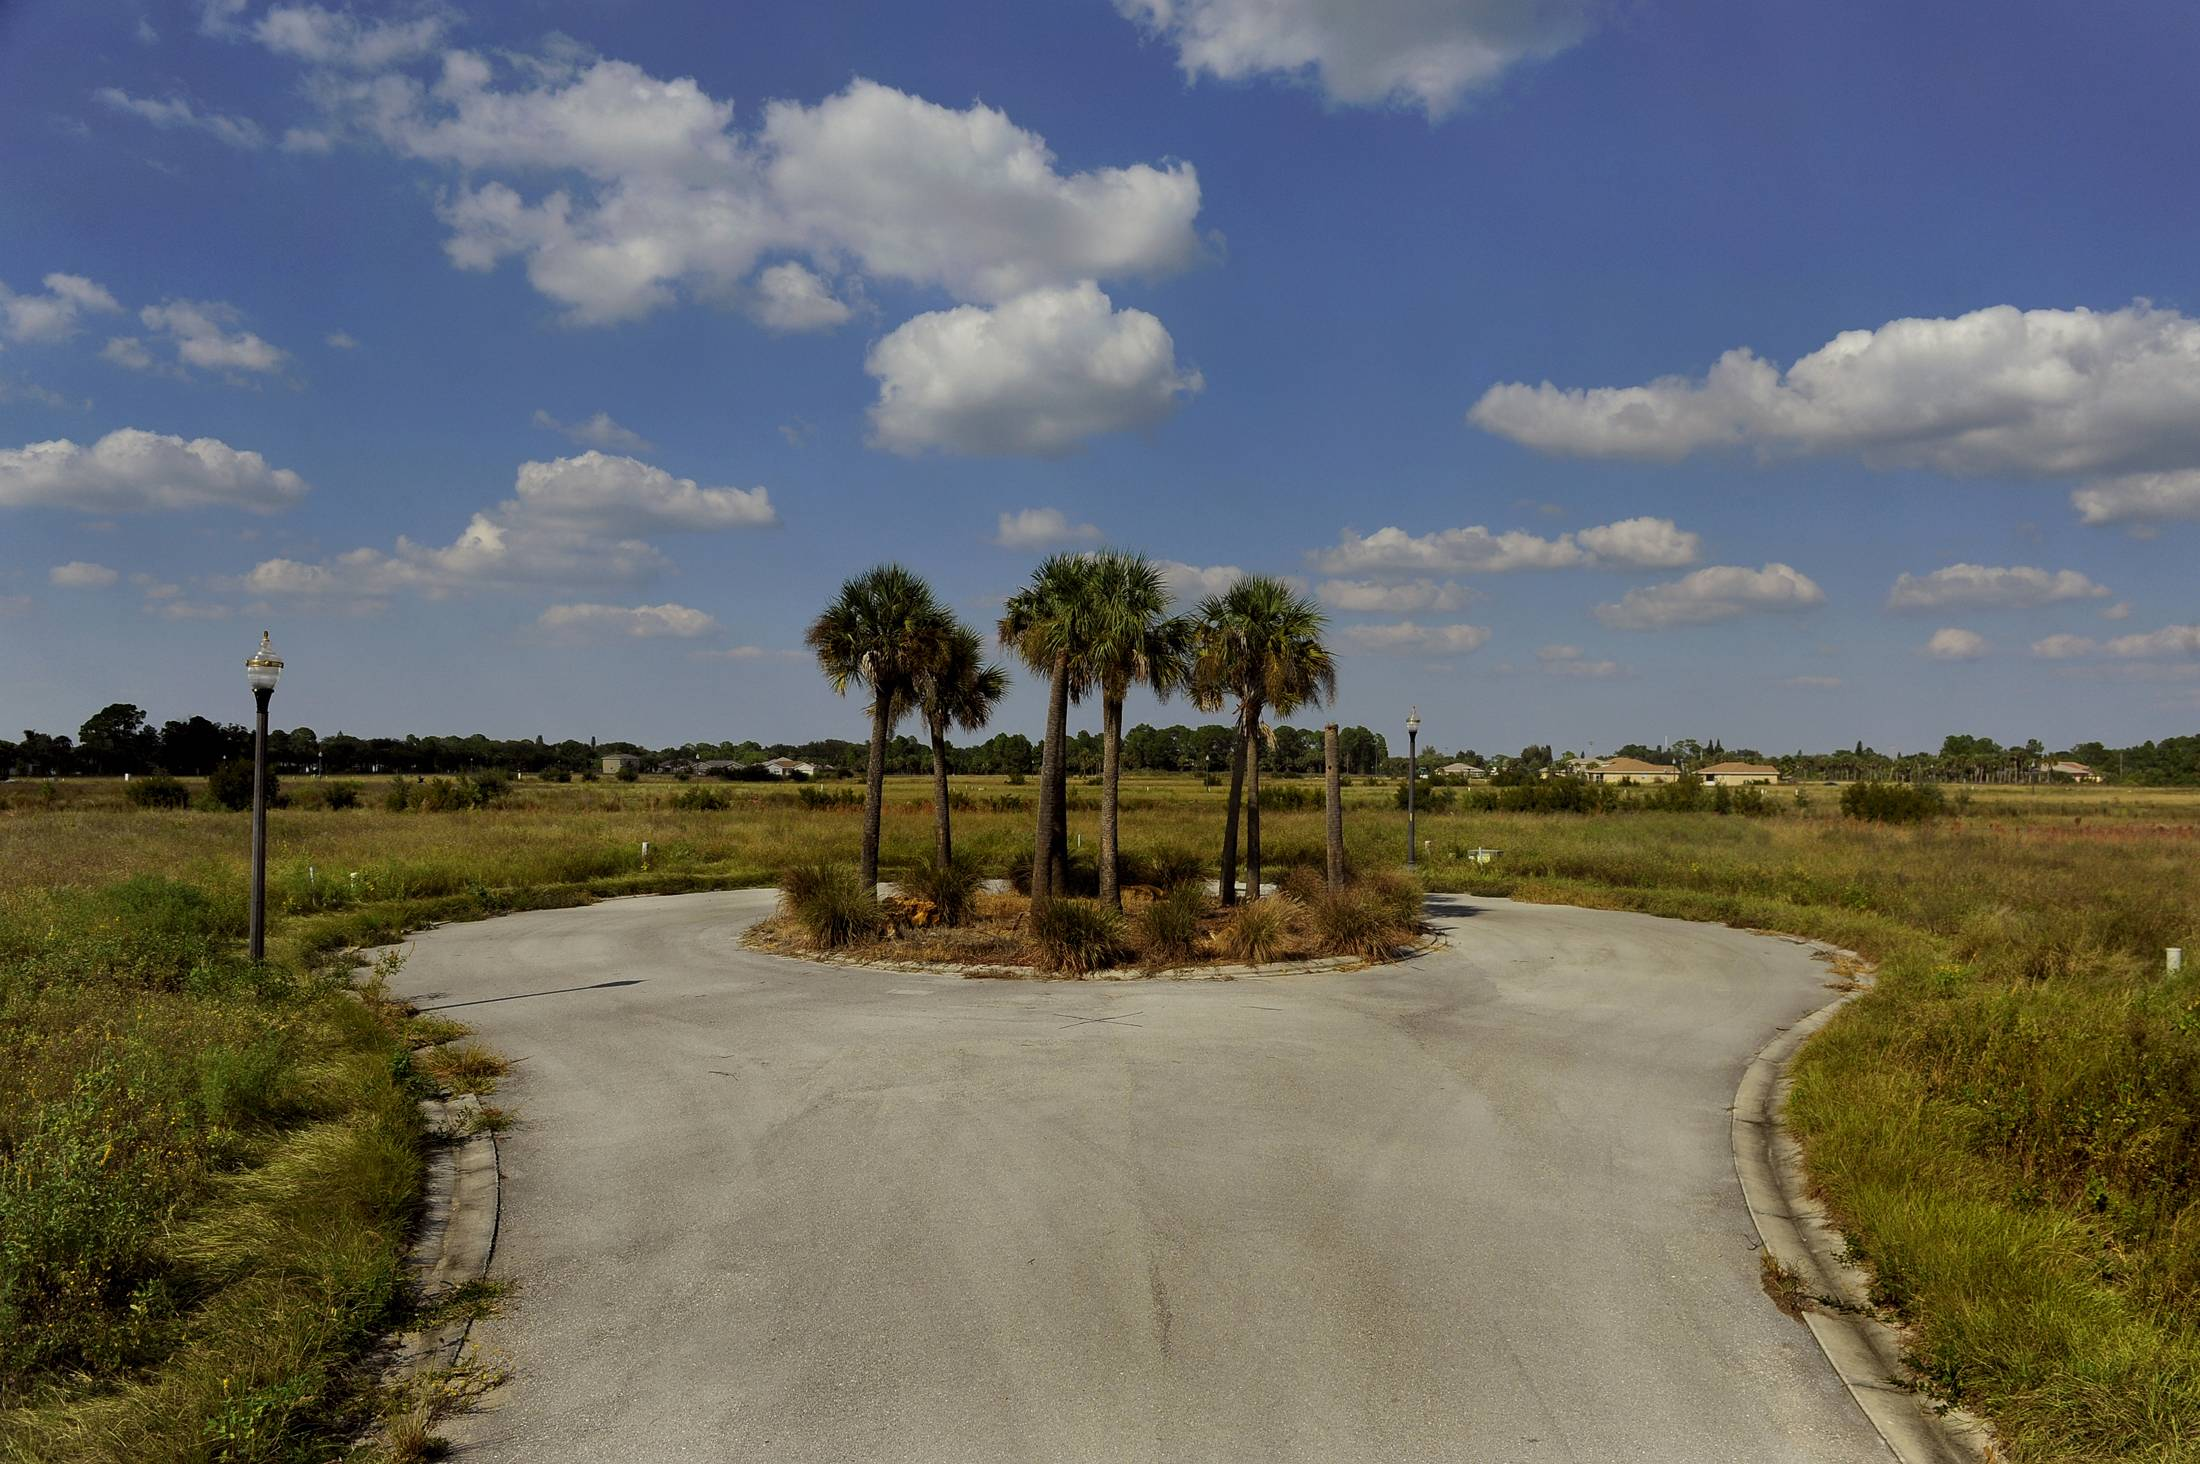 The developer of this housing development in Fort Myers, Fla., went out of business before it could be completed.